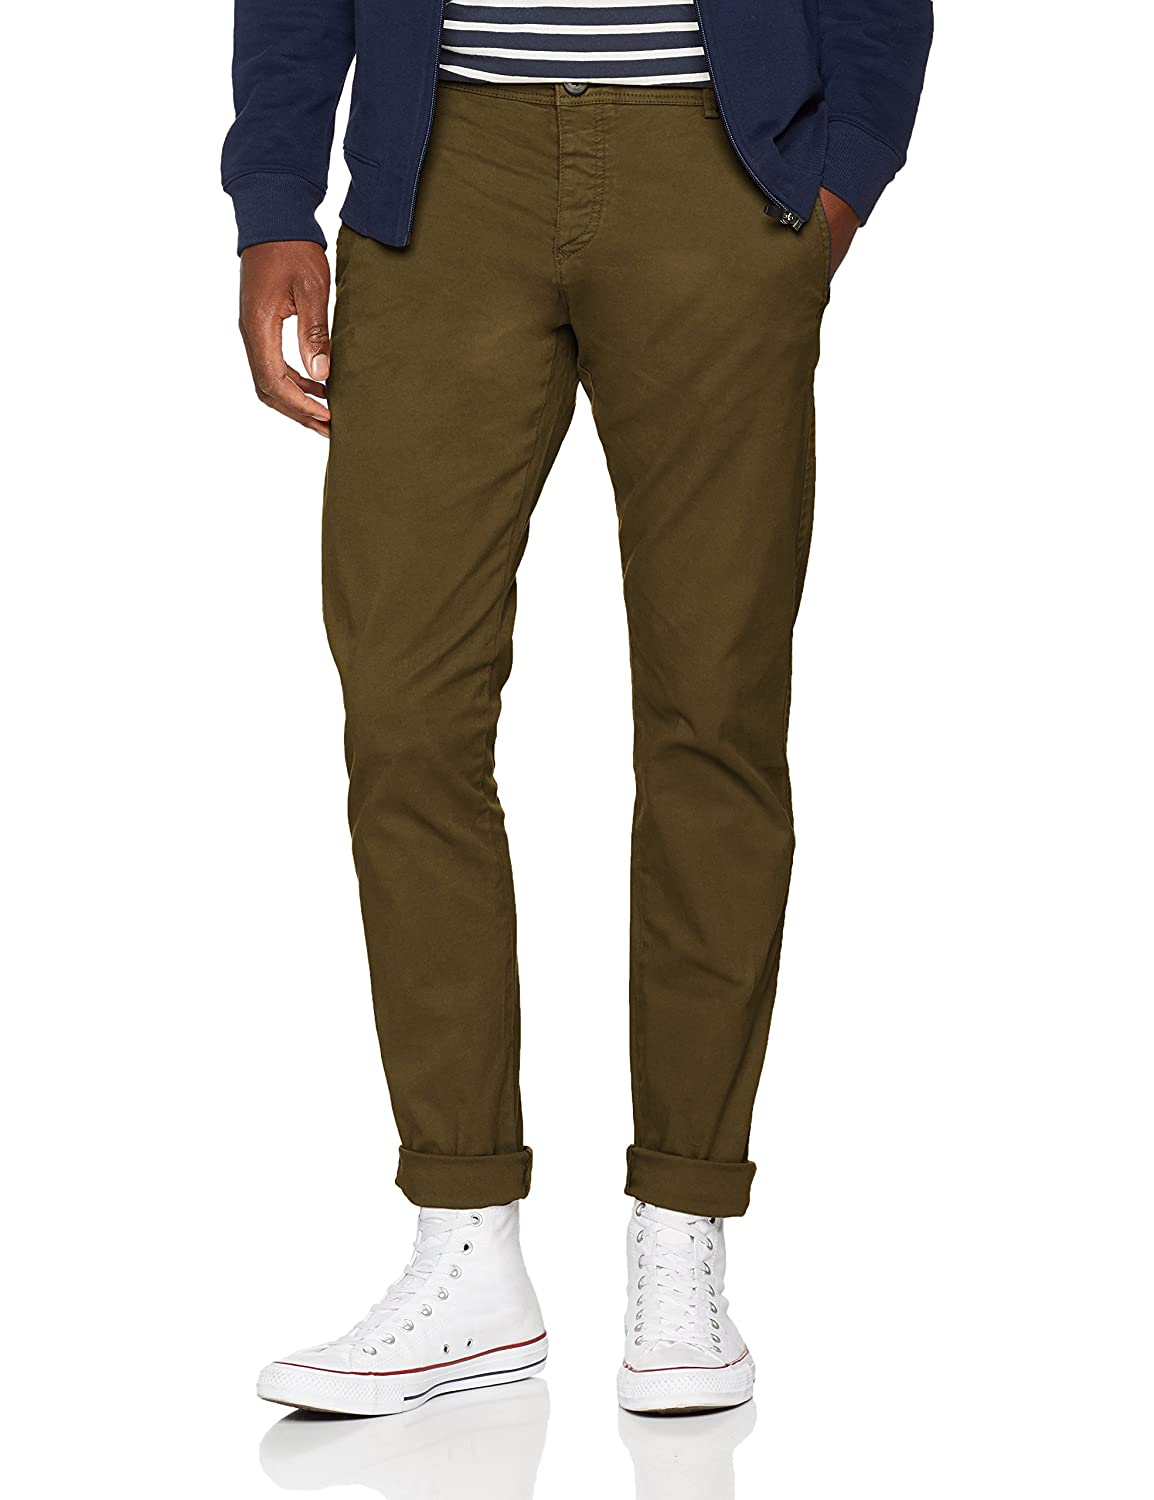 TALLA 36W / 32L. SELECTED HOMME Slhskinny-Luca Olive Night Pants W Noos, Pantalones para Hombre